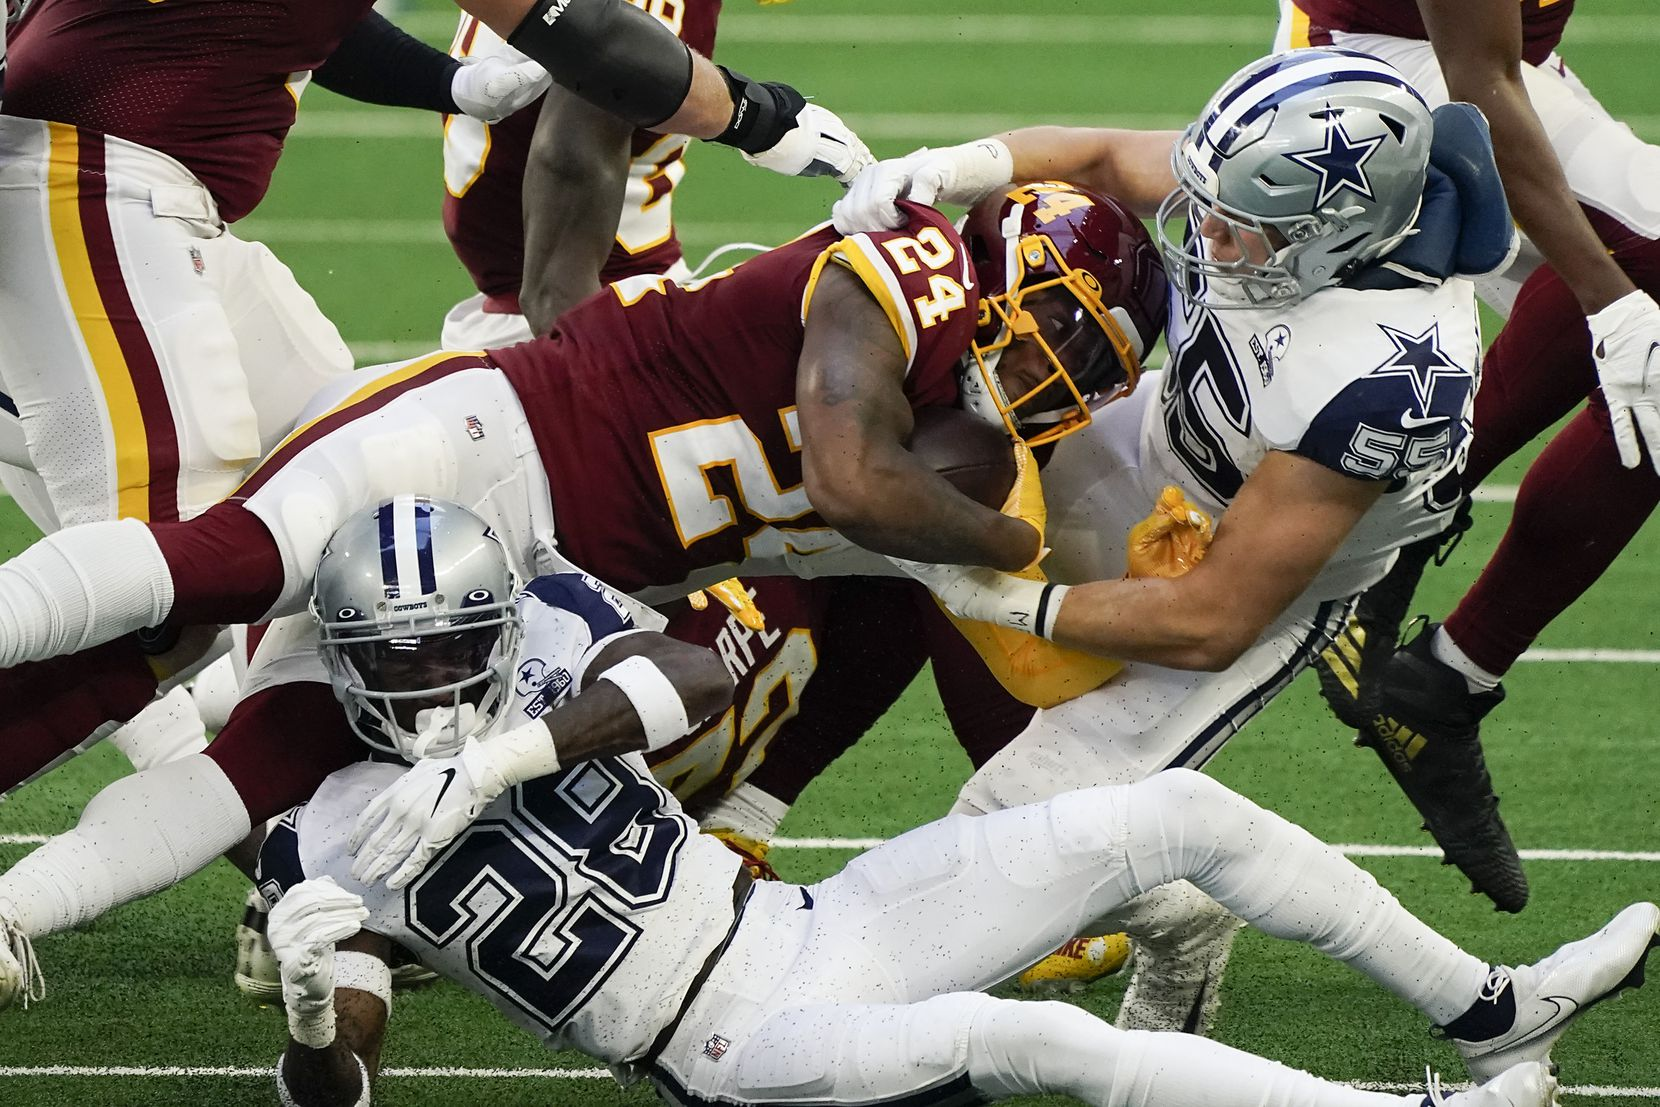 Washington Football Team running back Antonio Gibson (24) is brought down by Dallas Cowboys outside linebacker Leighton Vander Esch (55) and defensive back Rashard Robinson (28) during the first quarter of an NFL football game at AT&T Stadium on Thursday, Nov. 26, 2020, in Arlington. (Smiley N. Pool/The Dallas Morning News)